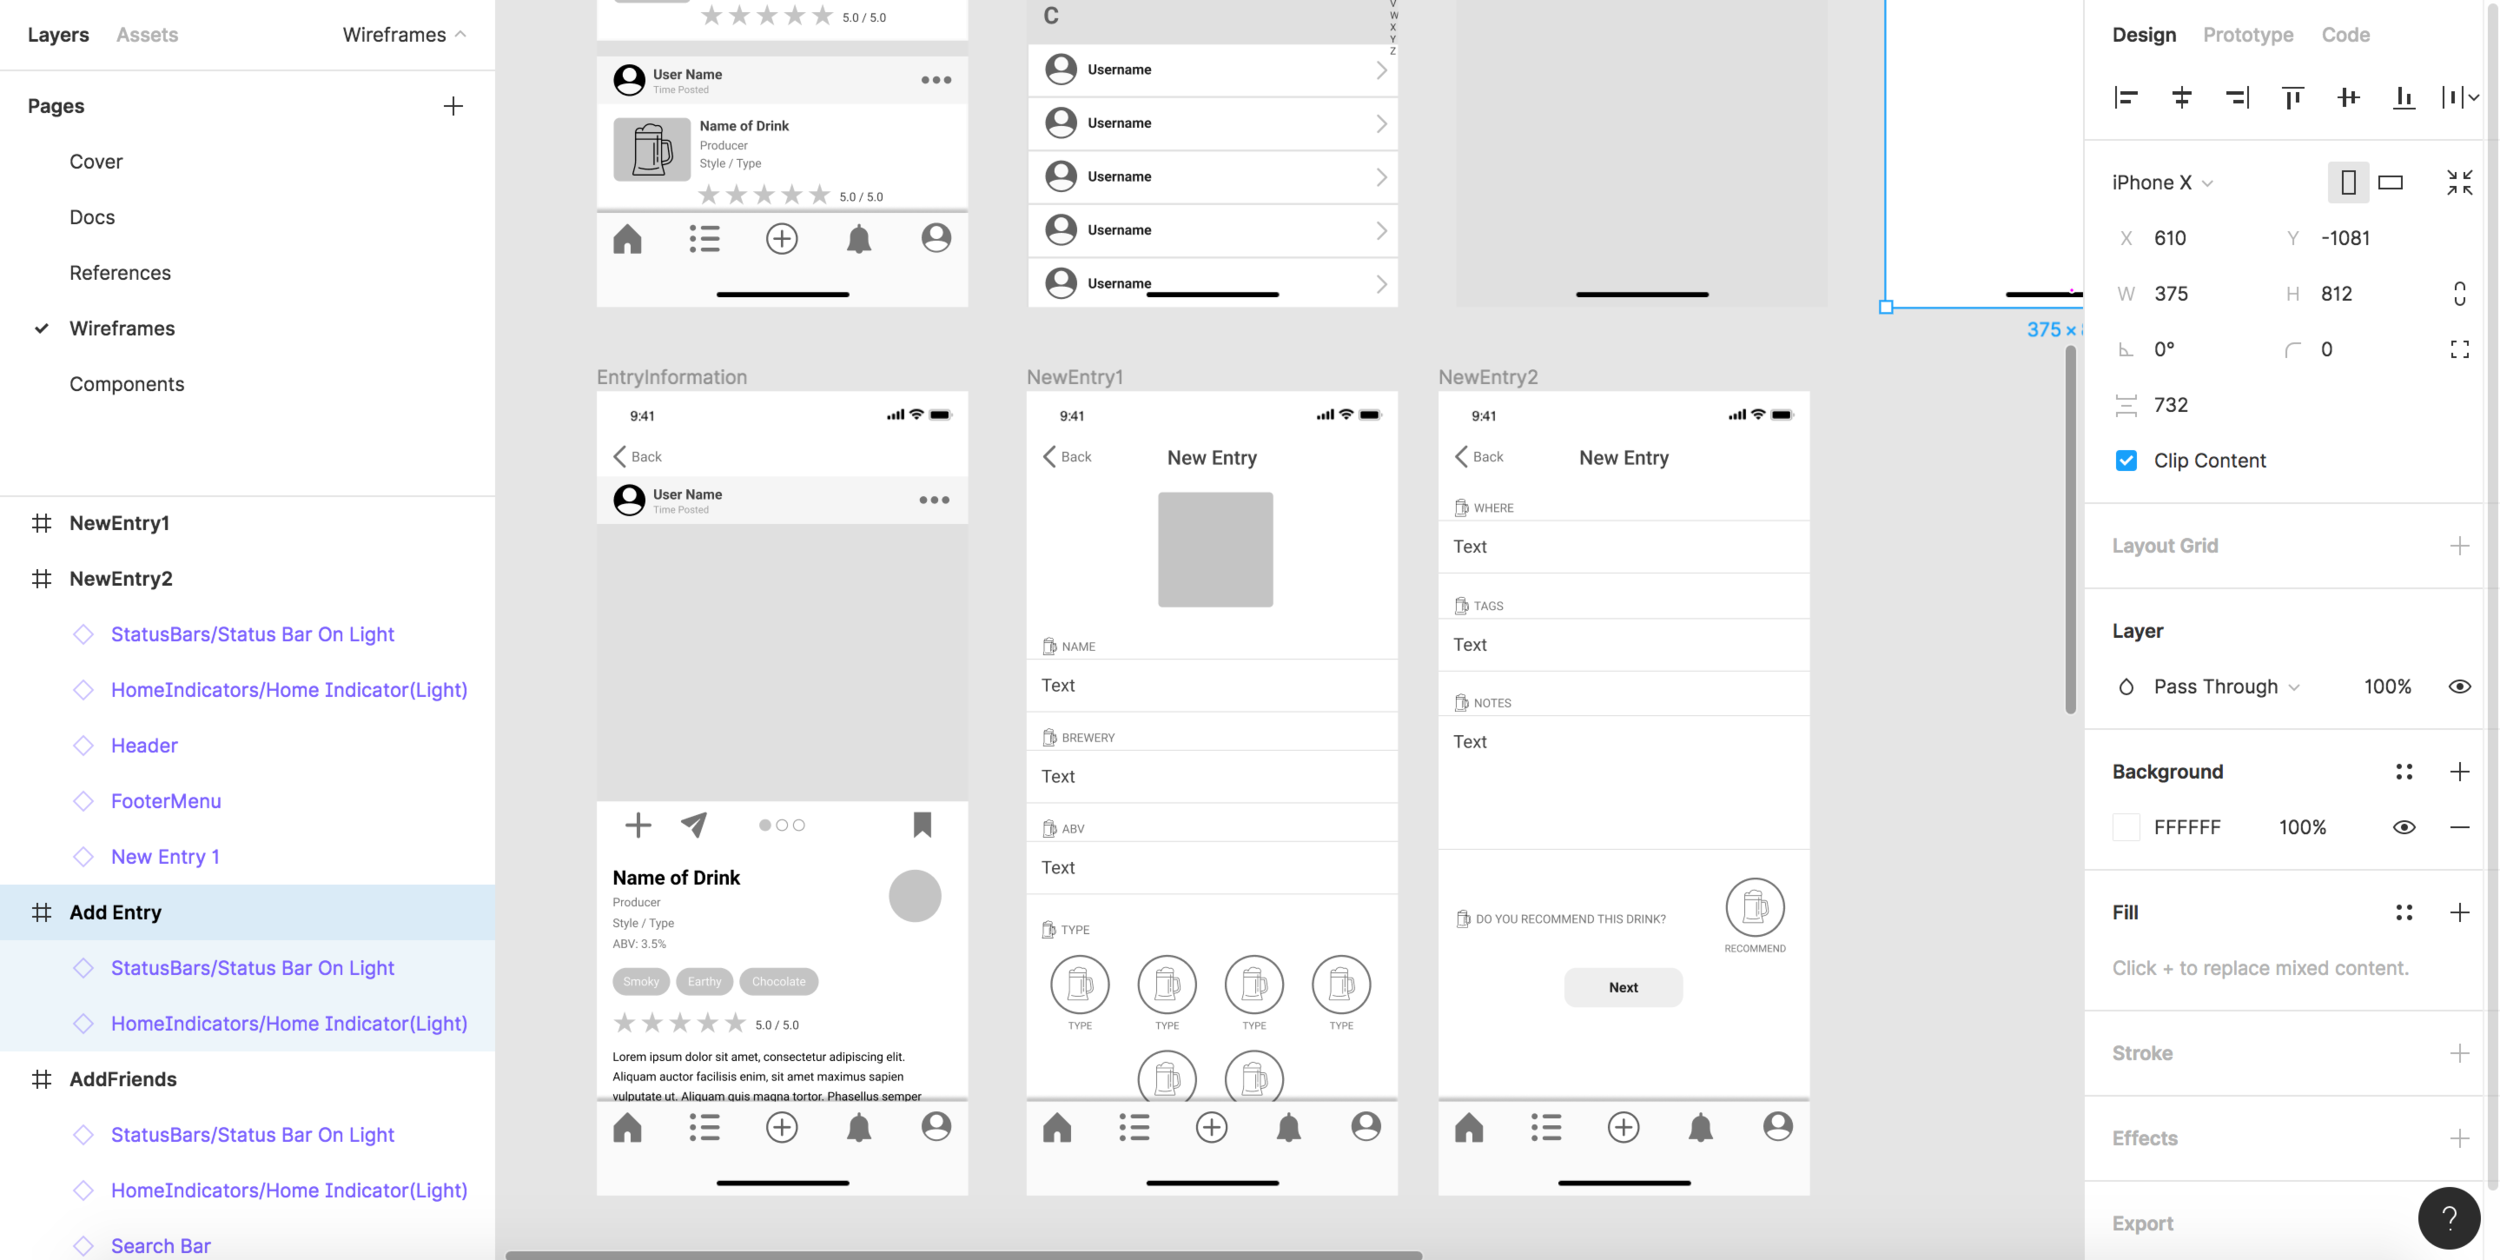 Working in Figma on the wireframes. I naturally want to call this grey-boxing, but I know that's a game dev term that doesn't always apply.